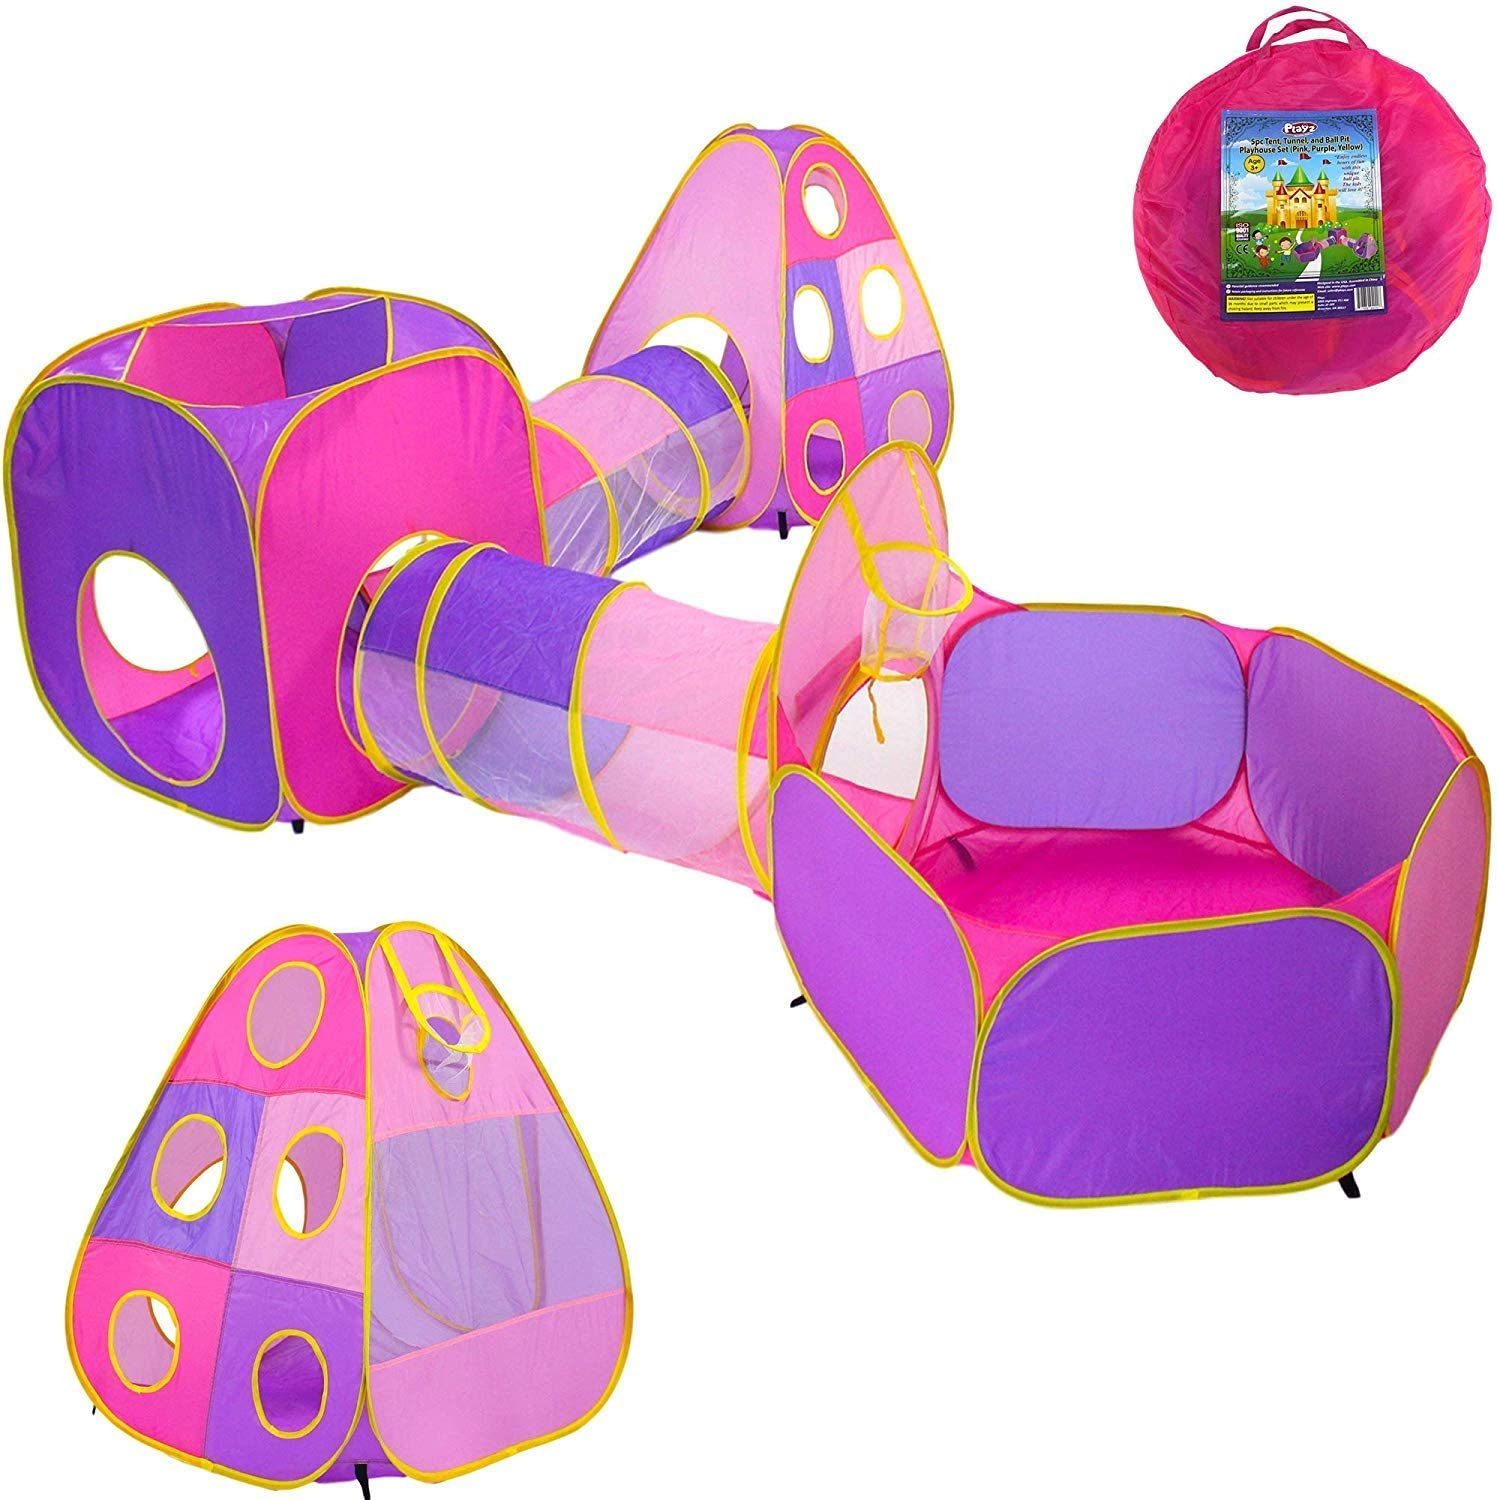 3 in 1 Kids Tunnel Play Tent House Indoor Outdoor Play Toys with Carrying Case